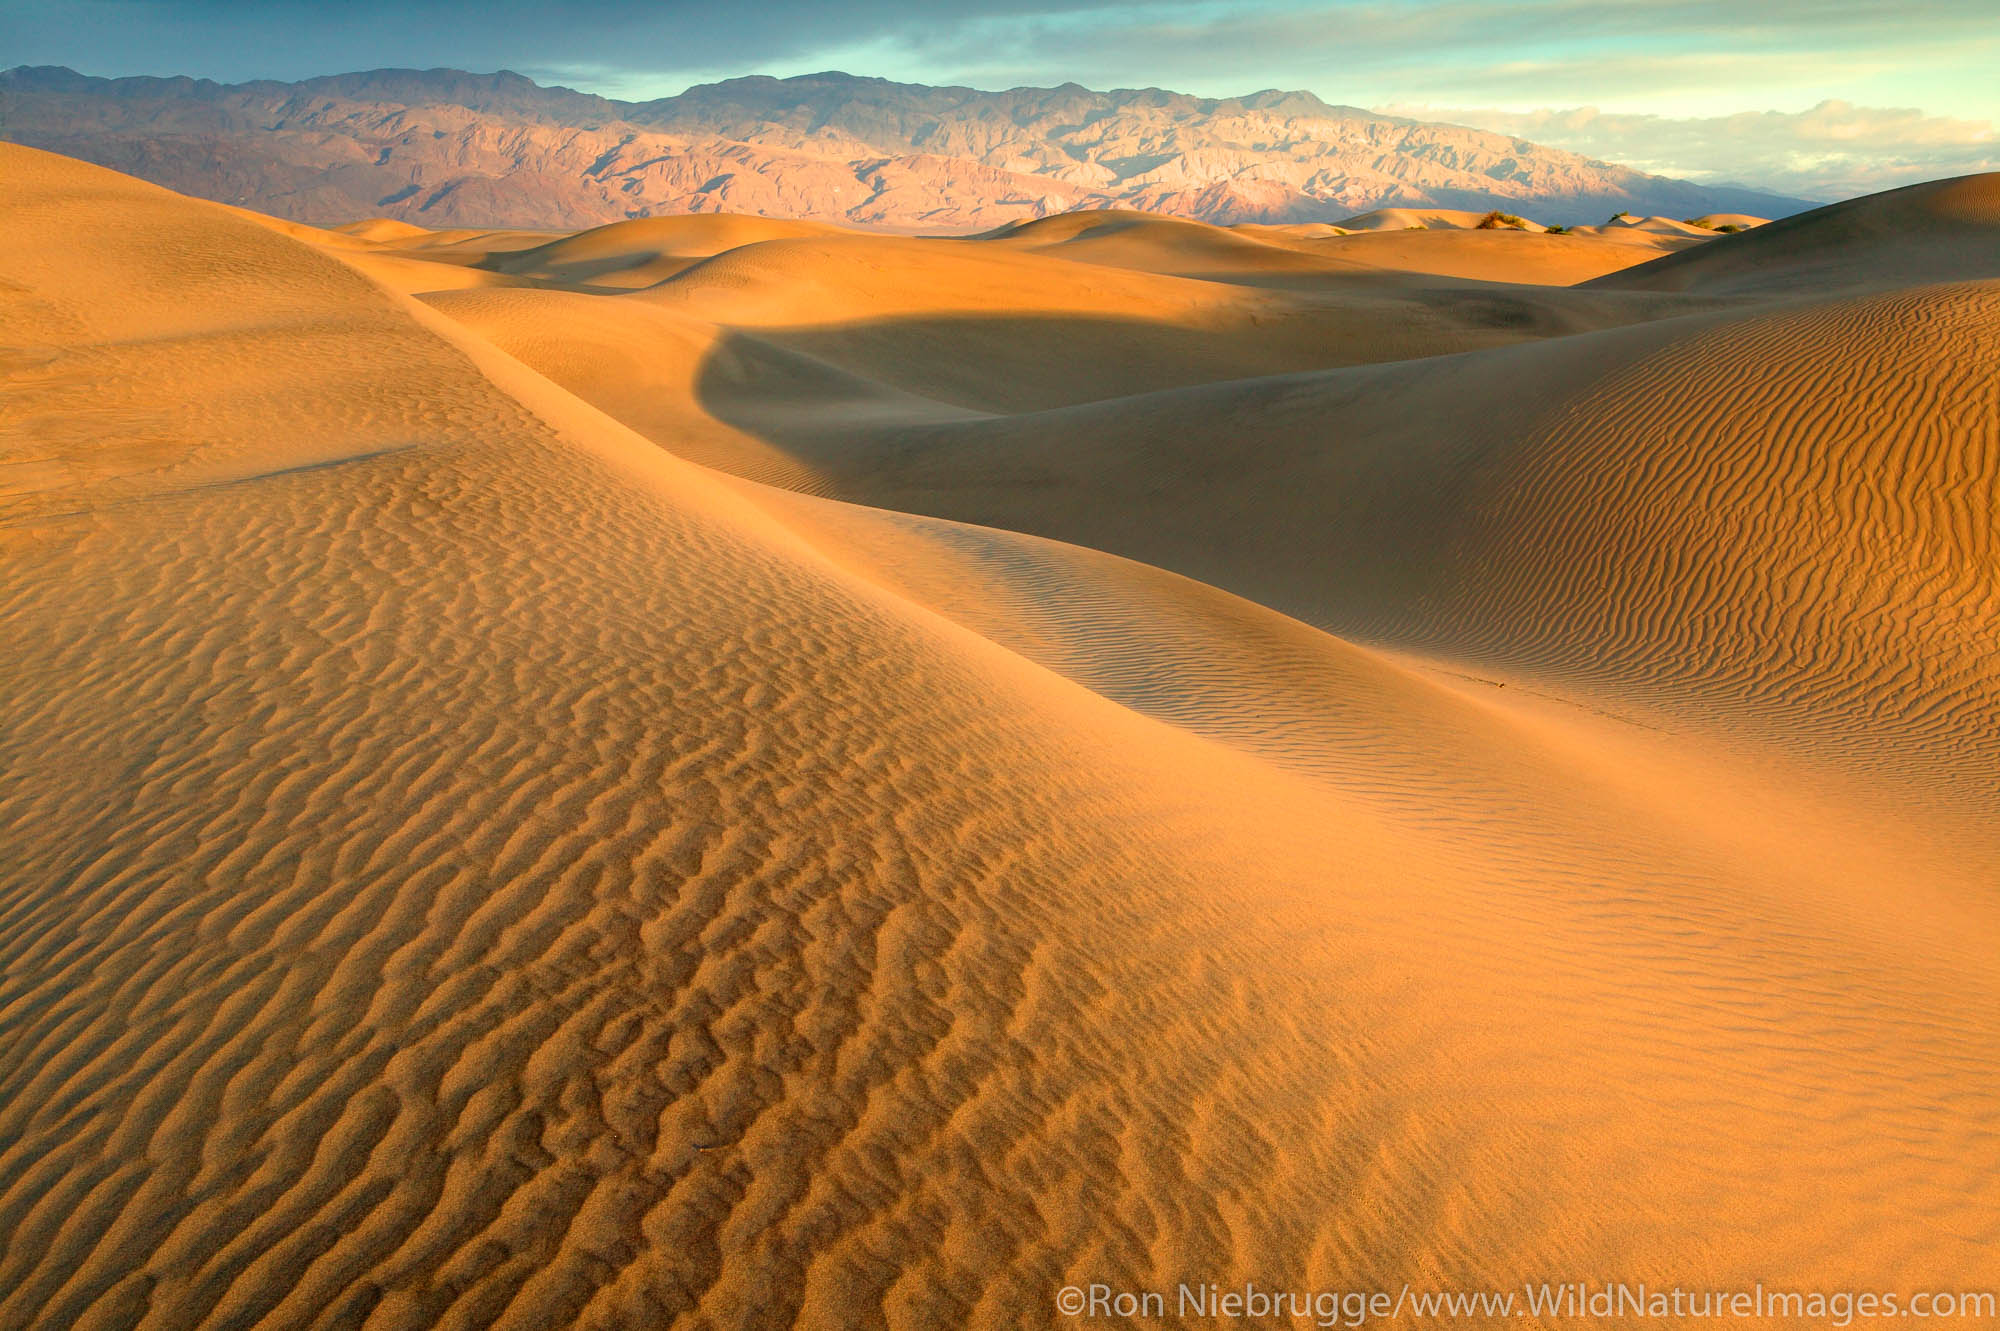 Sand dunes near Stovepipe Wells and the Cottonwood Mountains, Death Valley National Park, California.